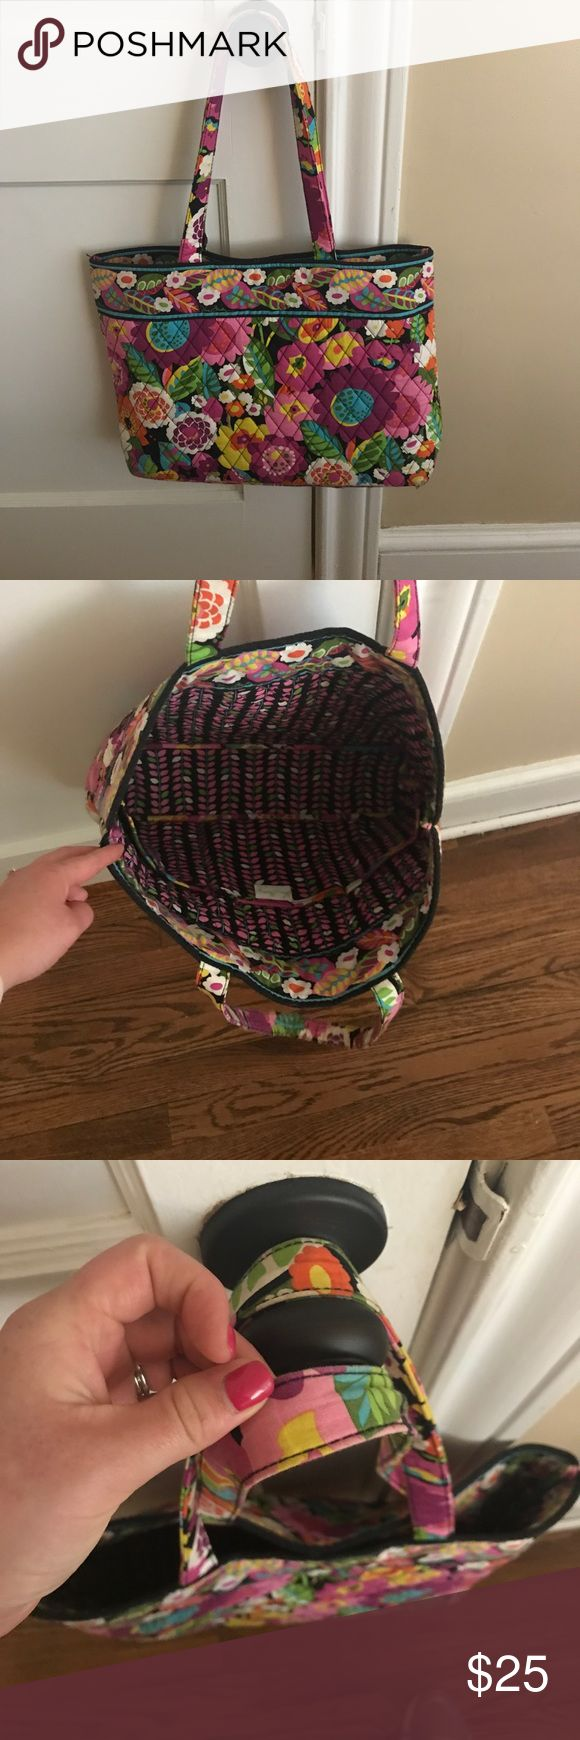 Vera Bradley Tote Bag Great for a trip to the gym, pool, a school bag, or really anything! Signs of light wear on the top of the straps (pictured) Vera Bradley Bags Totes